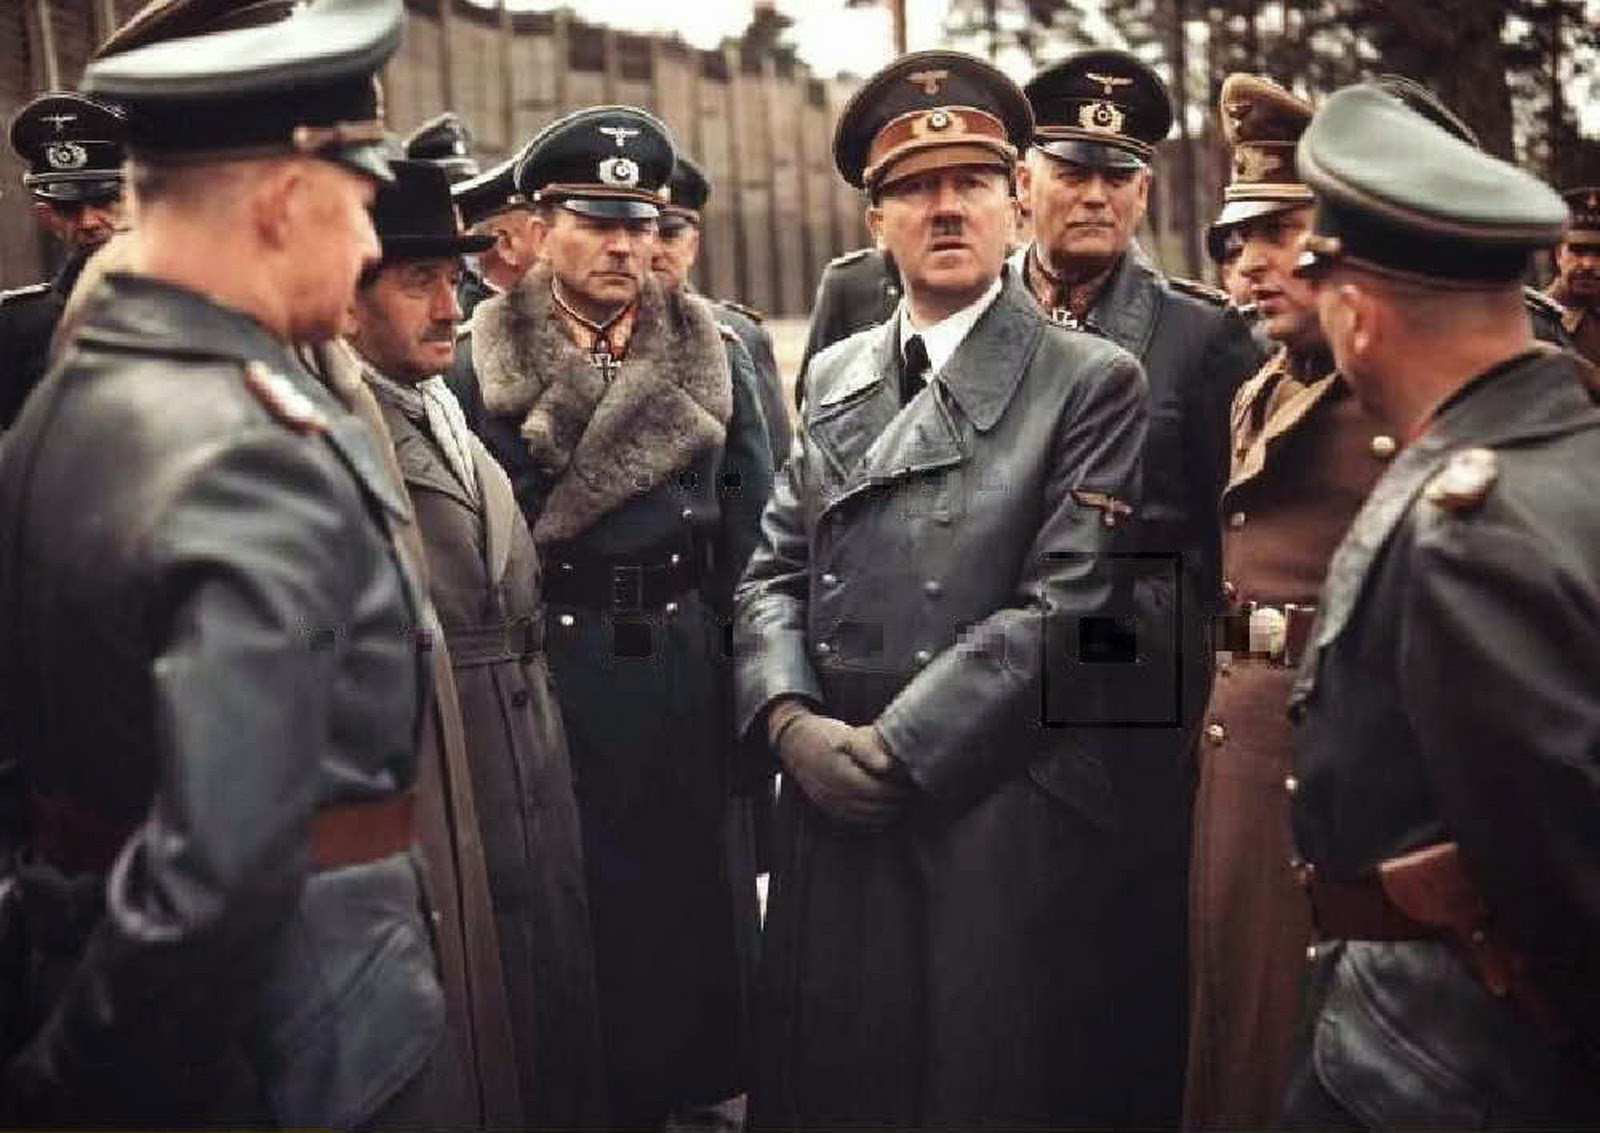 world war ii and adolf hitler #1 hitler's mercedes benz 770k: $10 million this is the car that chauffeured adolf hitler through the hordes of adoring germans and nazi supporters before and during world war ii.